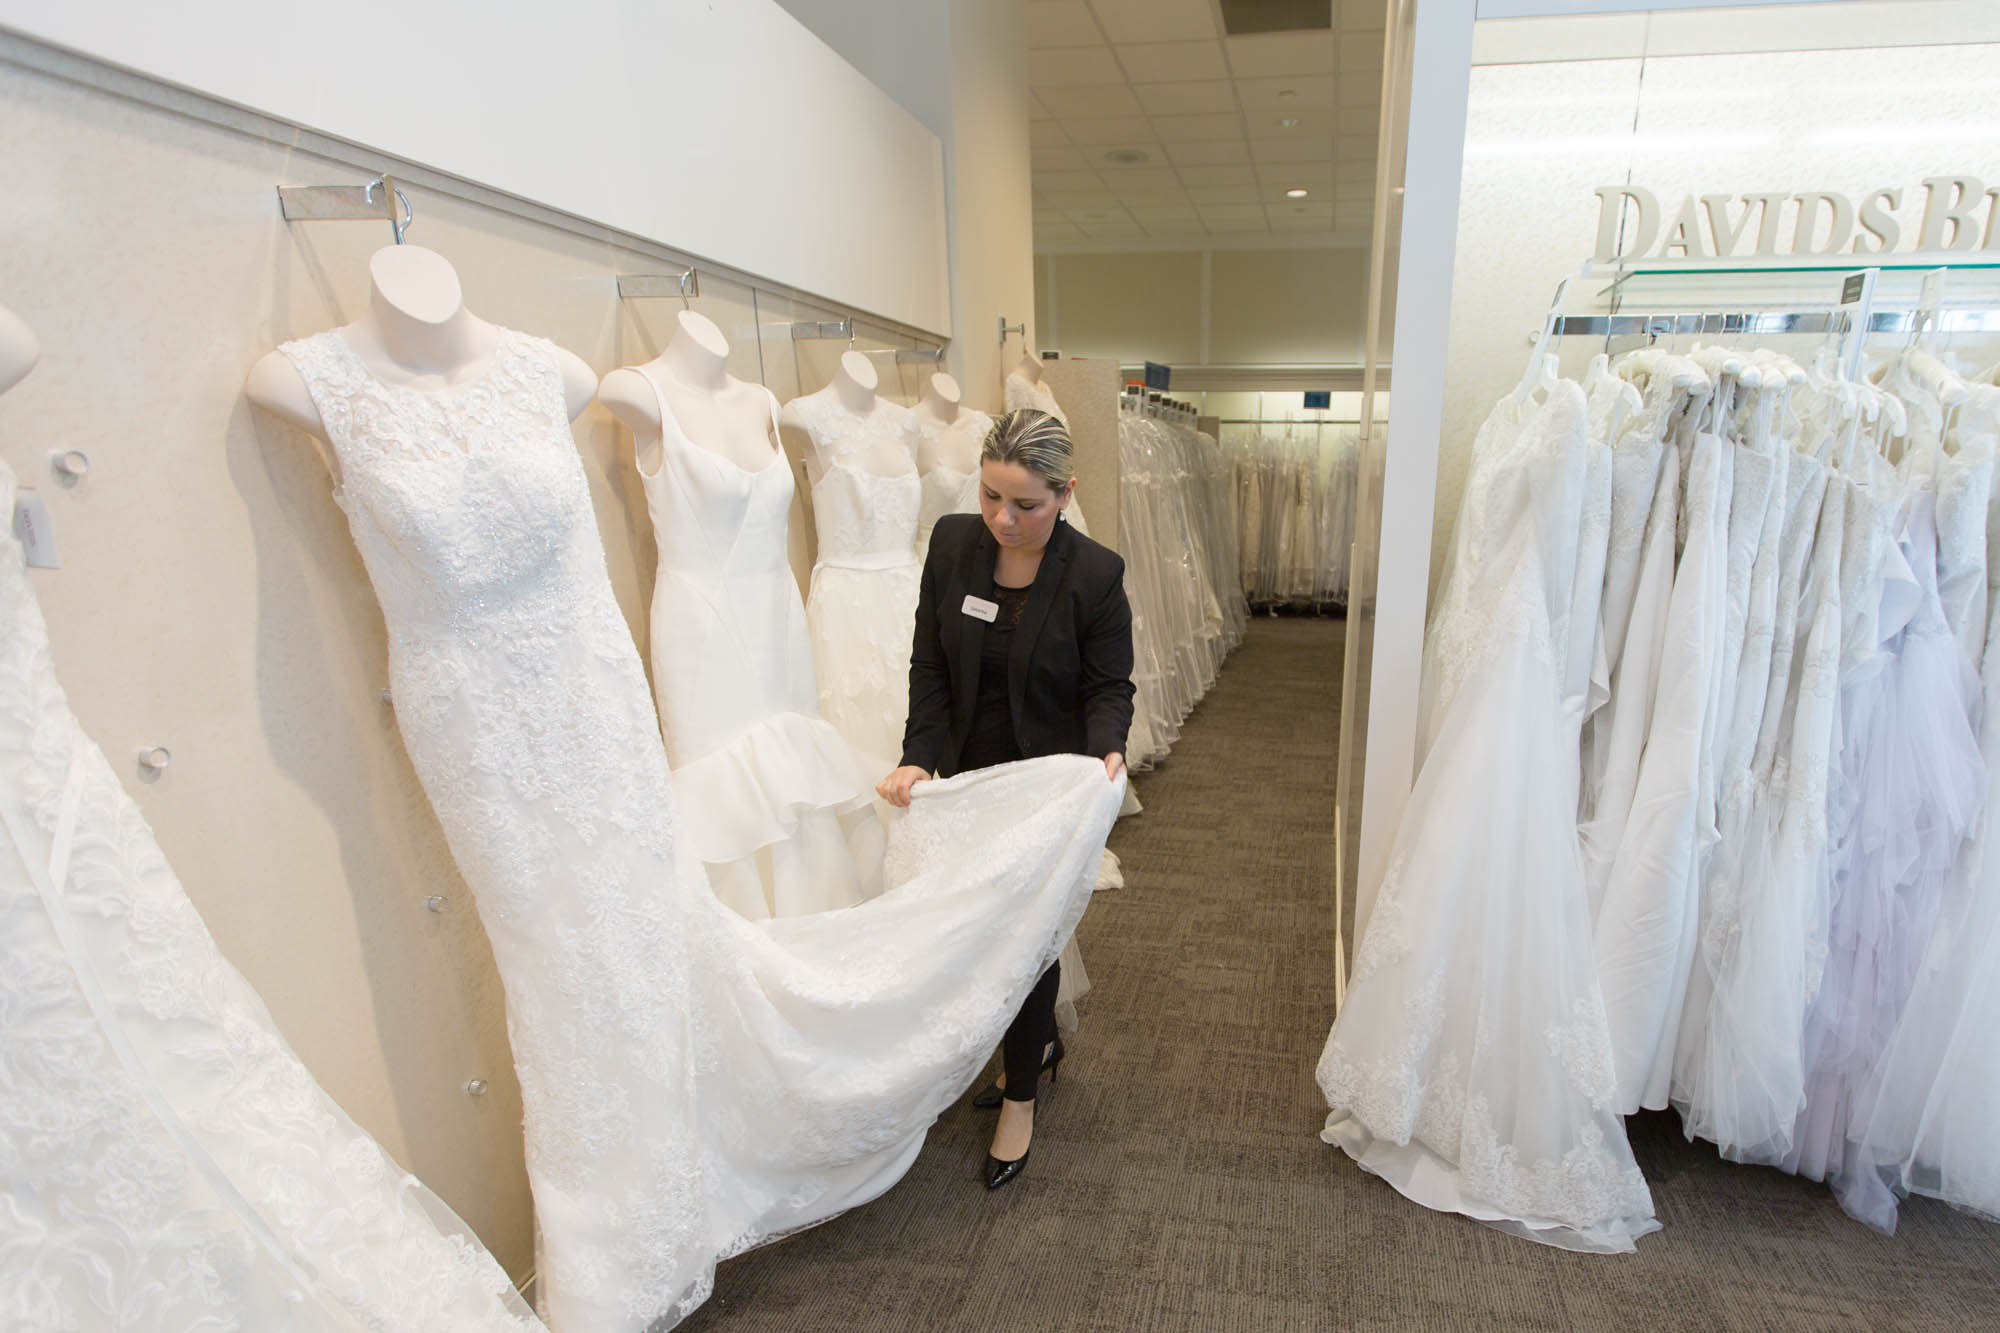 David 39 S Bridal Doesn 39 T Want To Be The Walmart Of Weddings